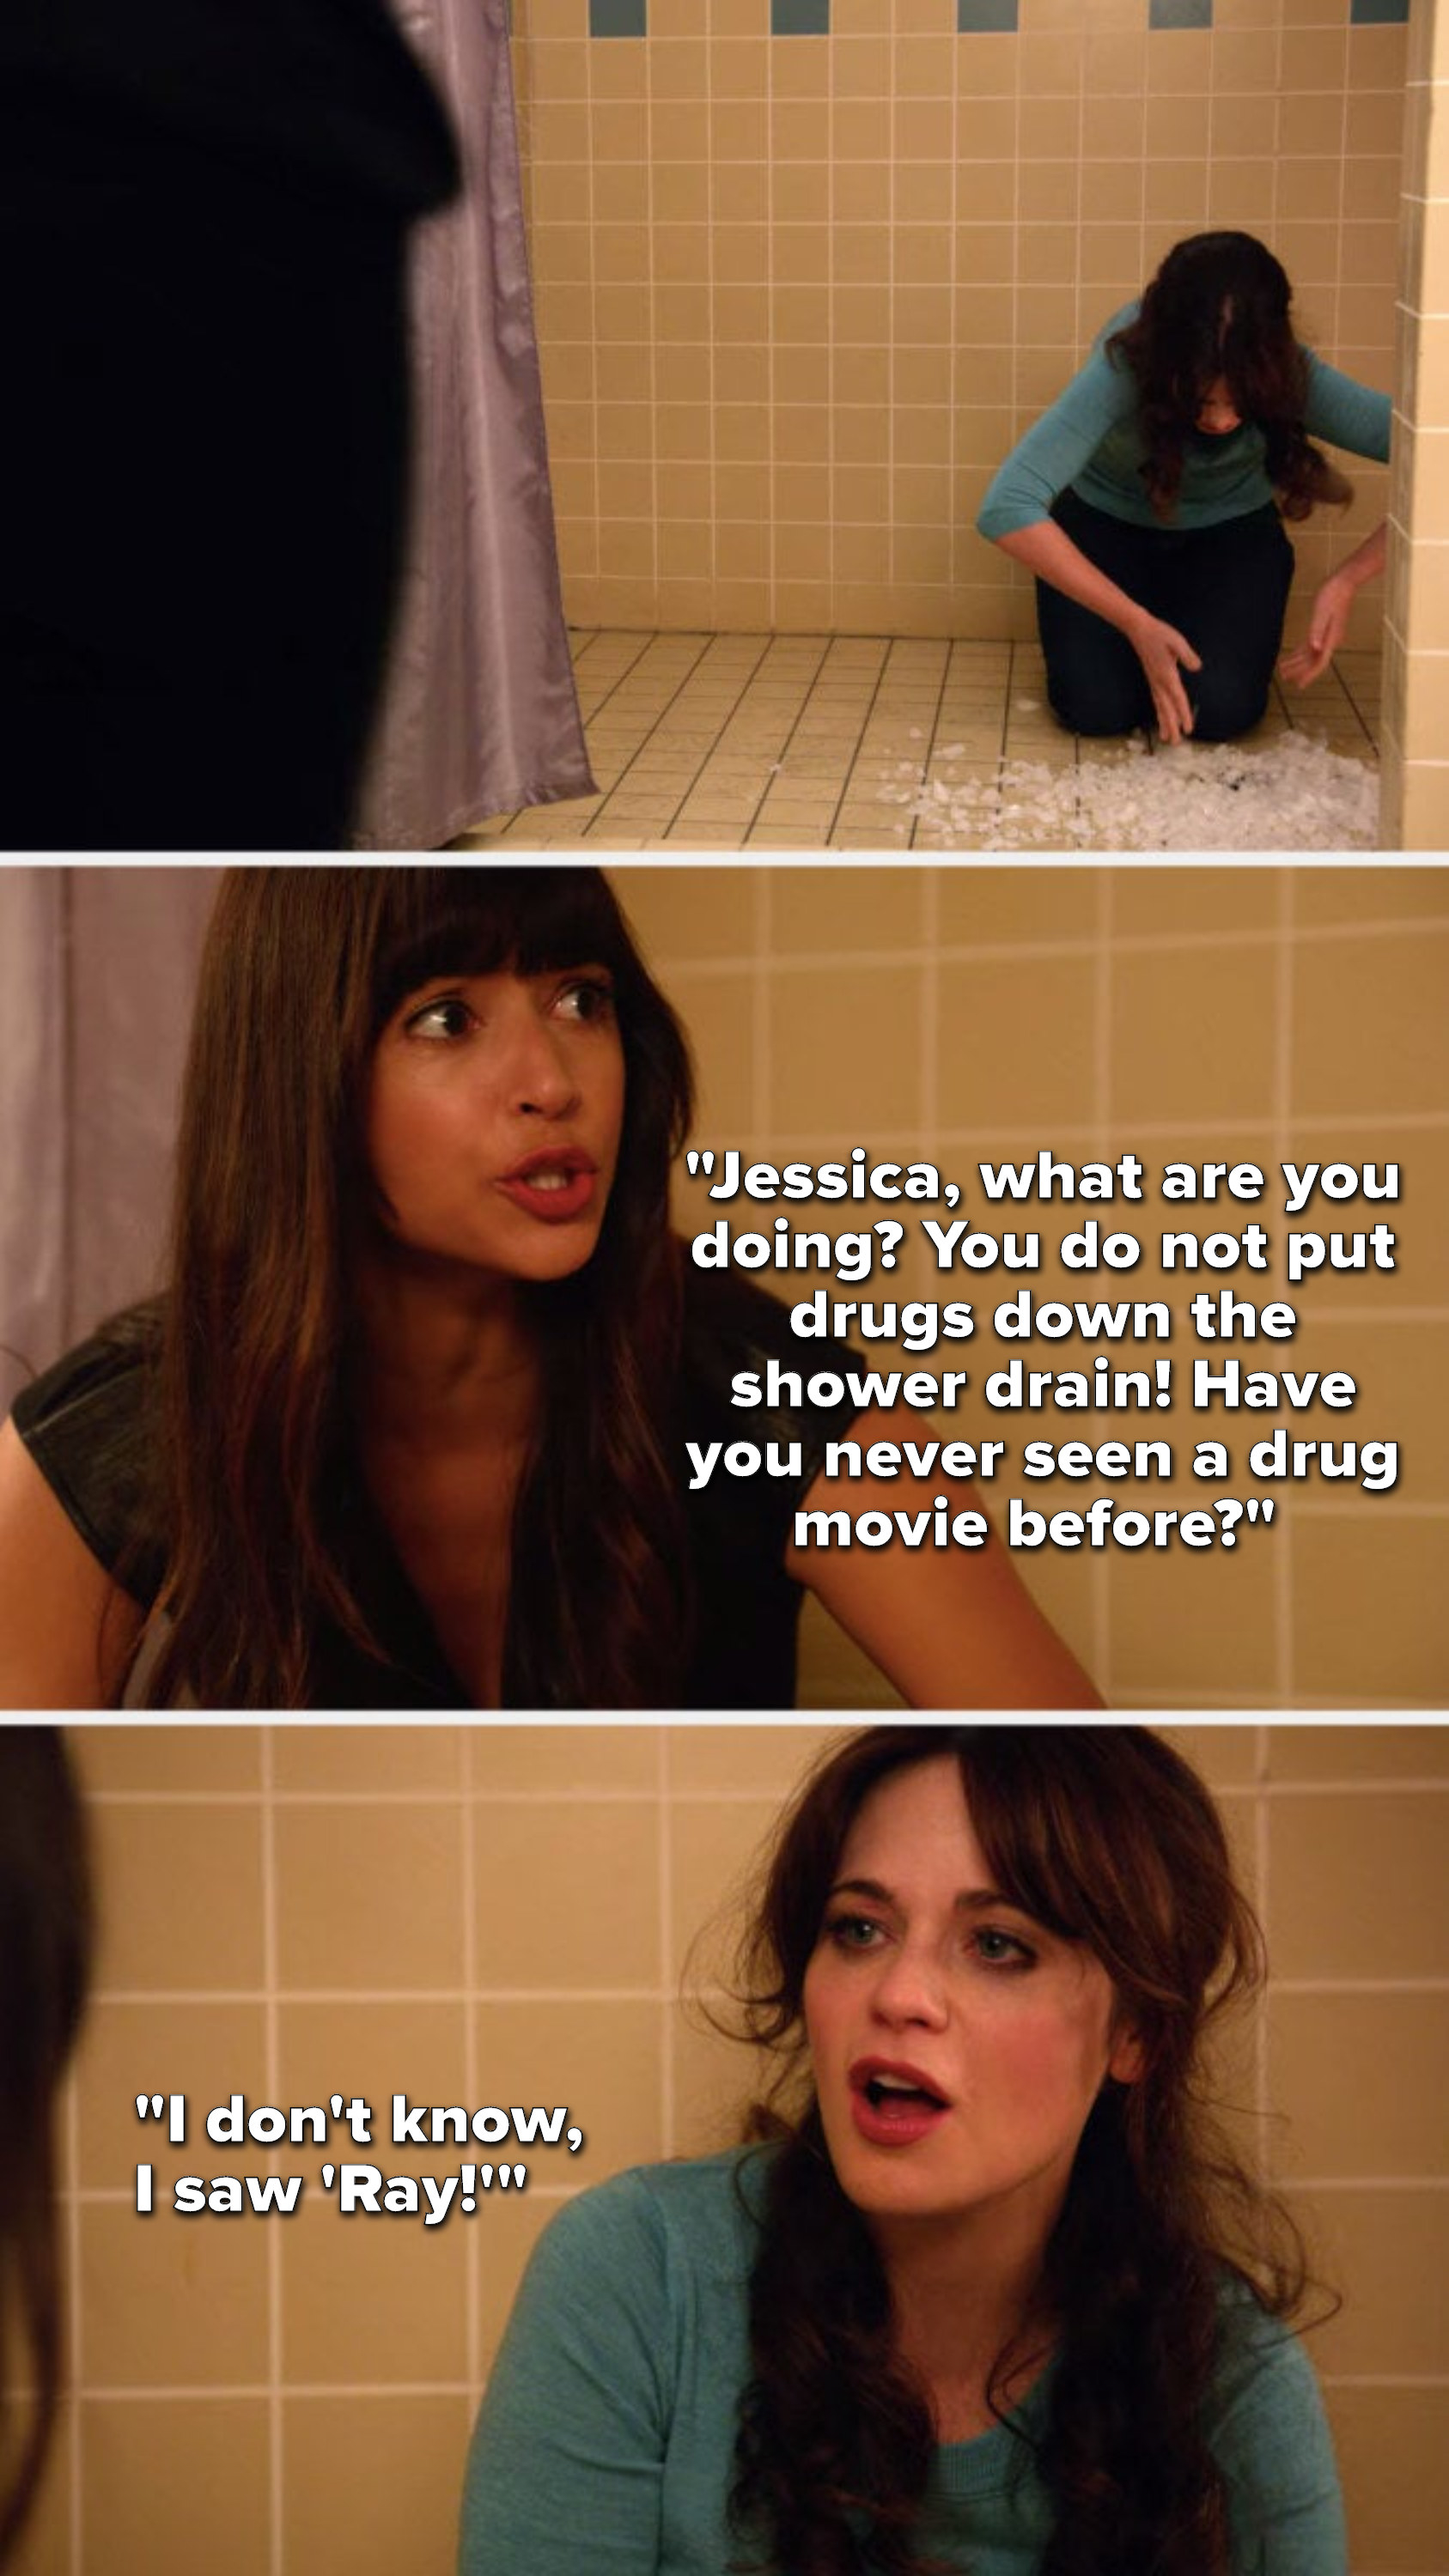 """Cece walks in on Jess putting meth down the shower drain and says, """"Jessica, what are you doing, you do not put drugs down the shower drain, have you never seen a drug movie before,"""" and Jess says, """"I don't know, I saw 'Ray'"""""""